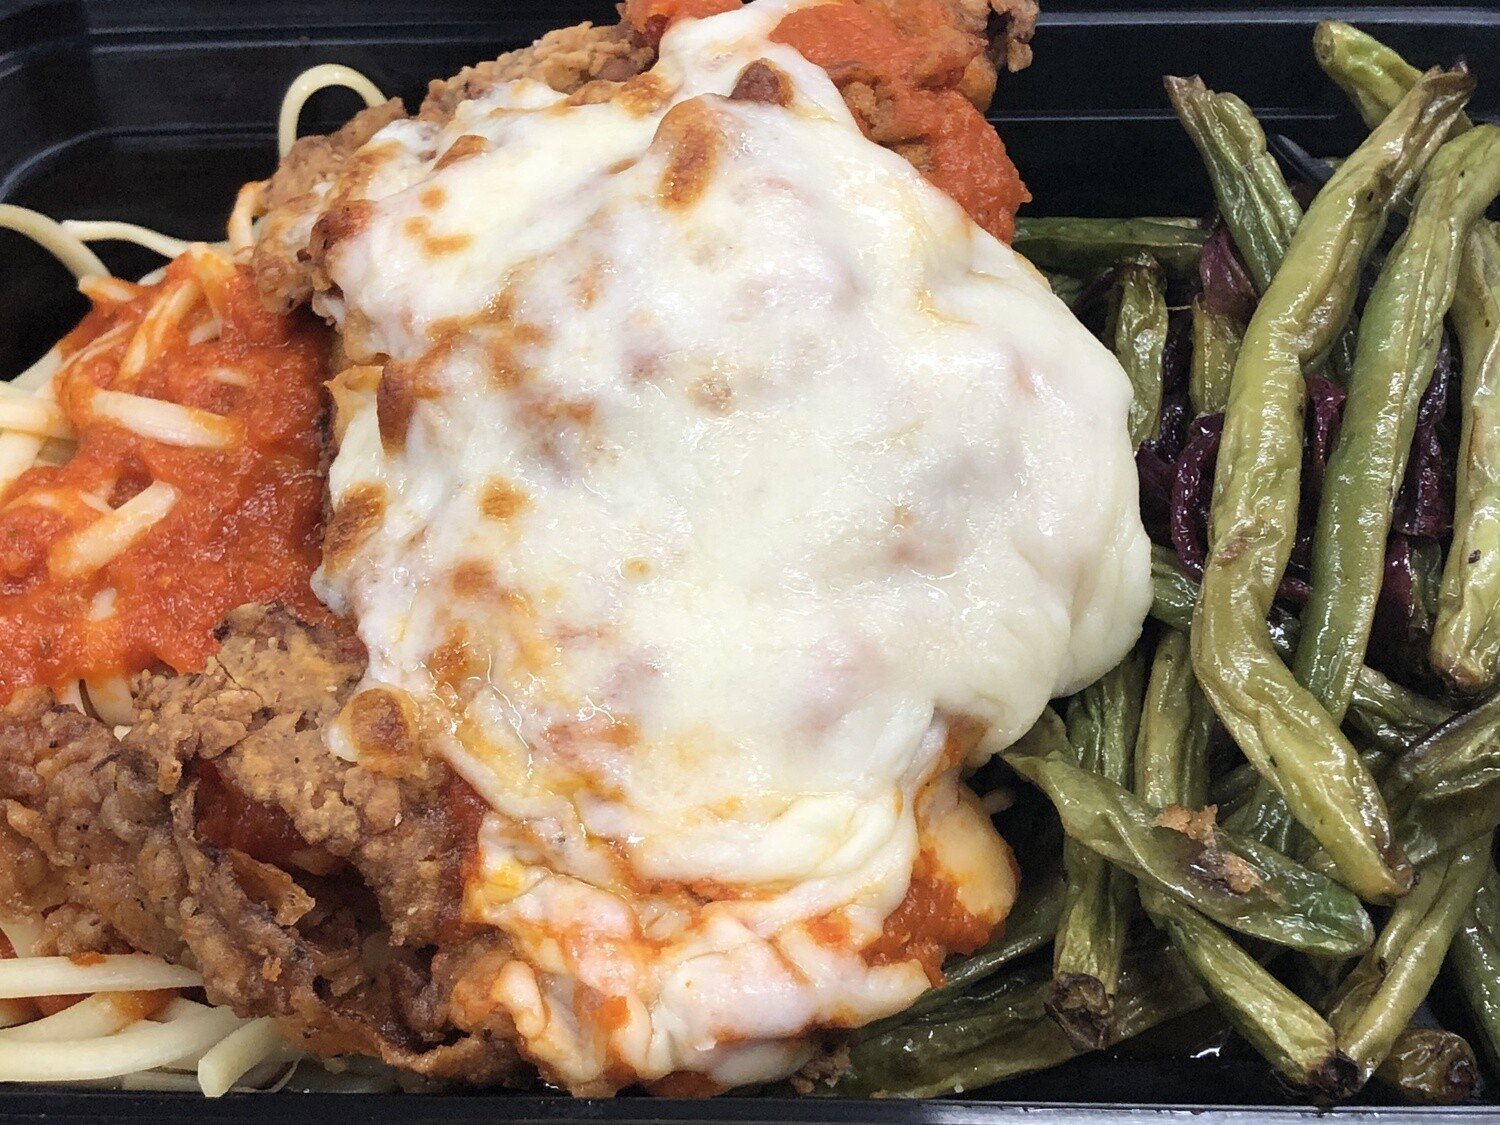 Chicken Parmesan Meal for One- Breaded chicken breast and linguine with house made marinara. Topped with melted mozzarella Served with Sautéed Green beans